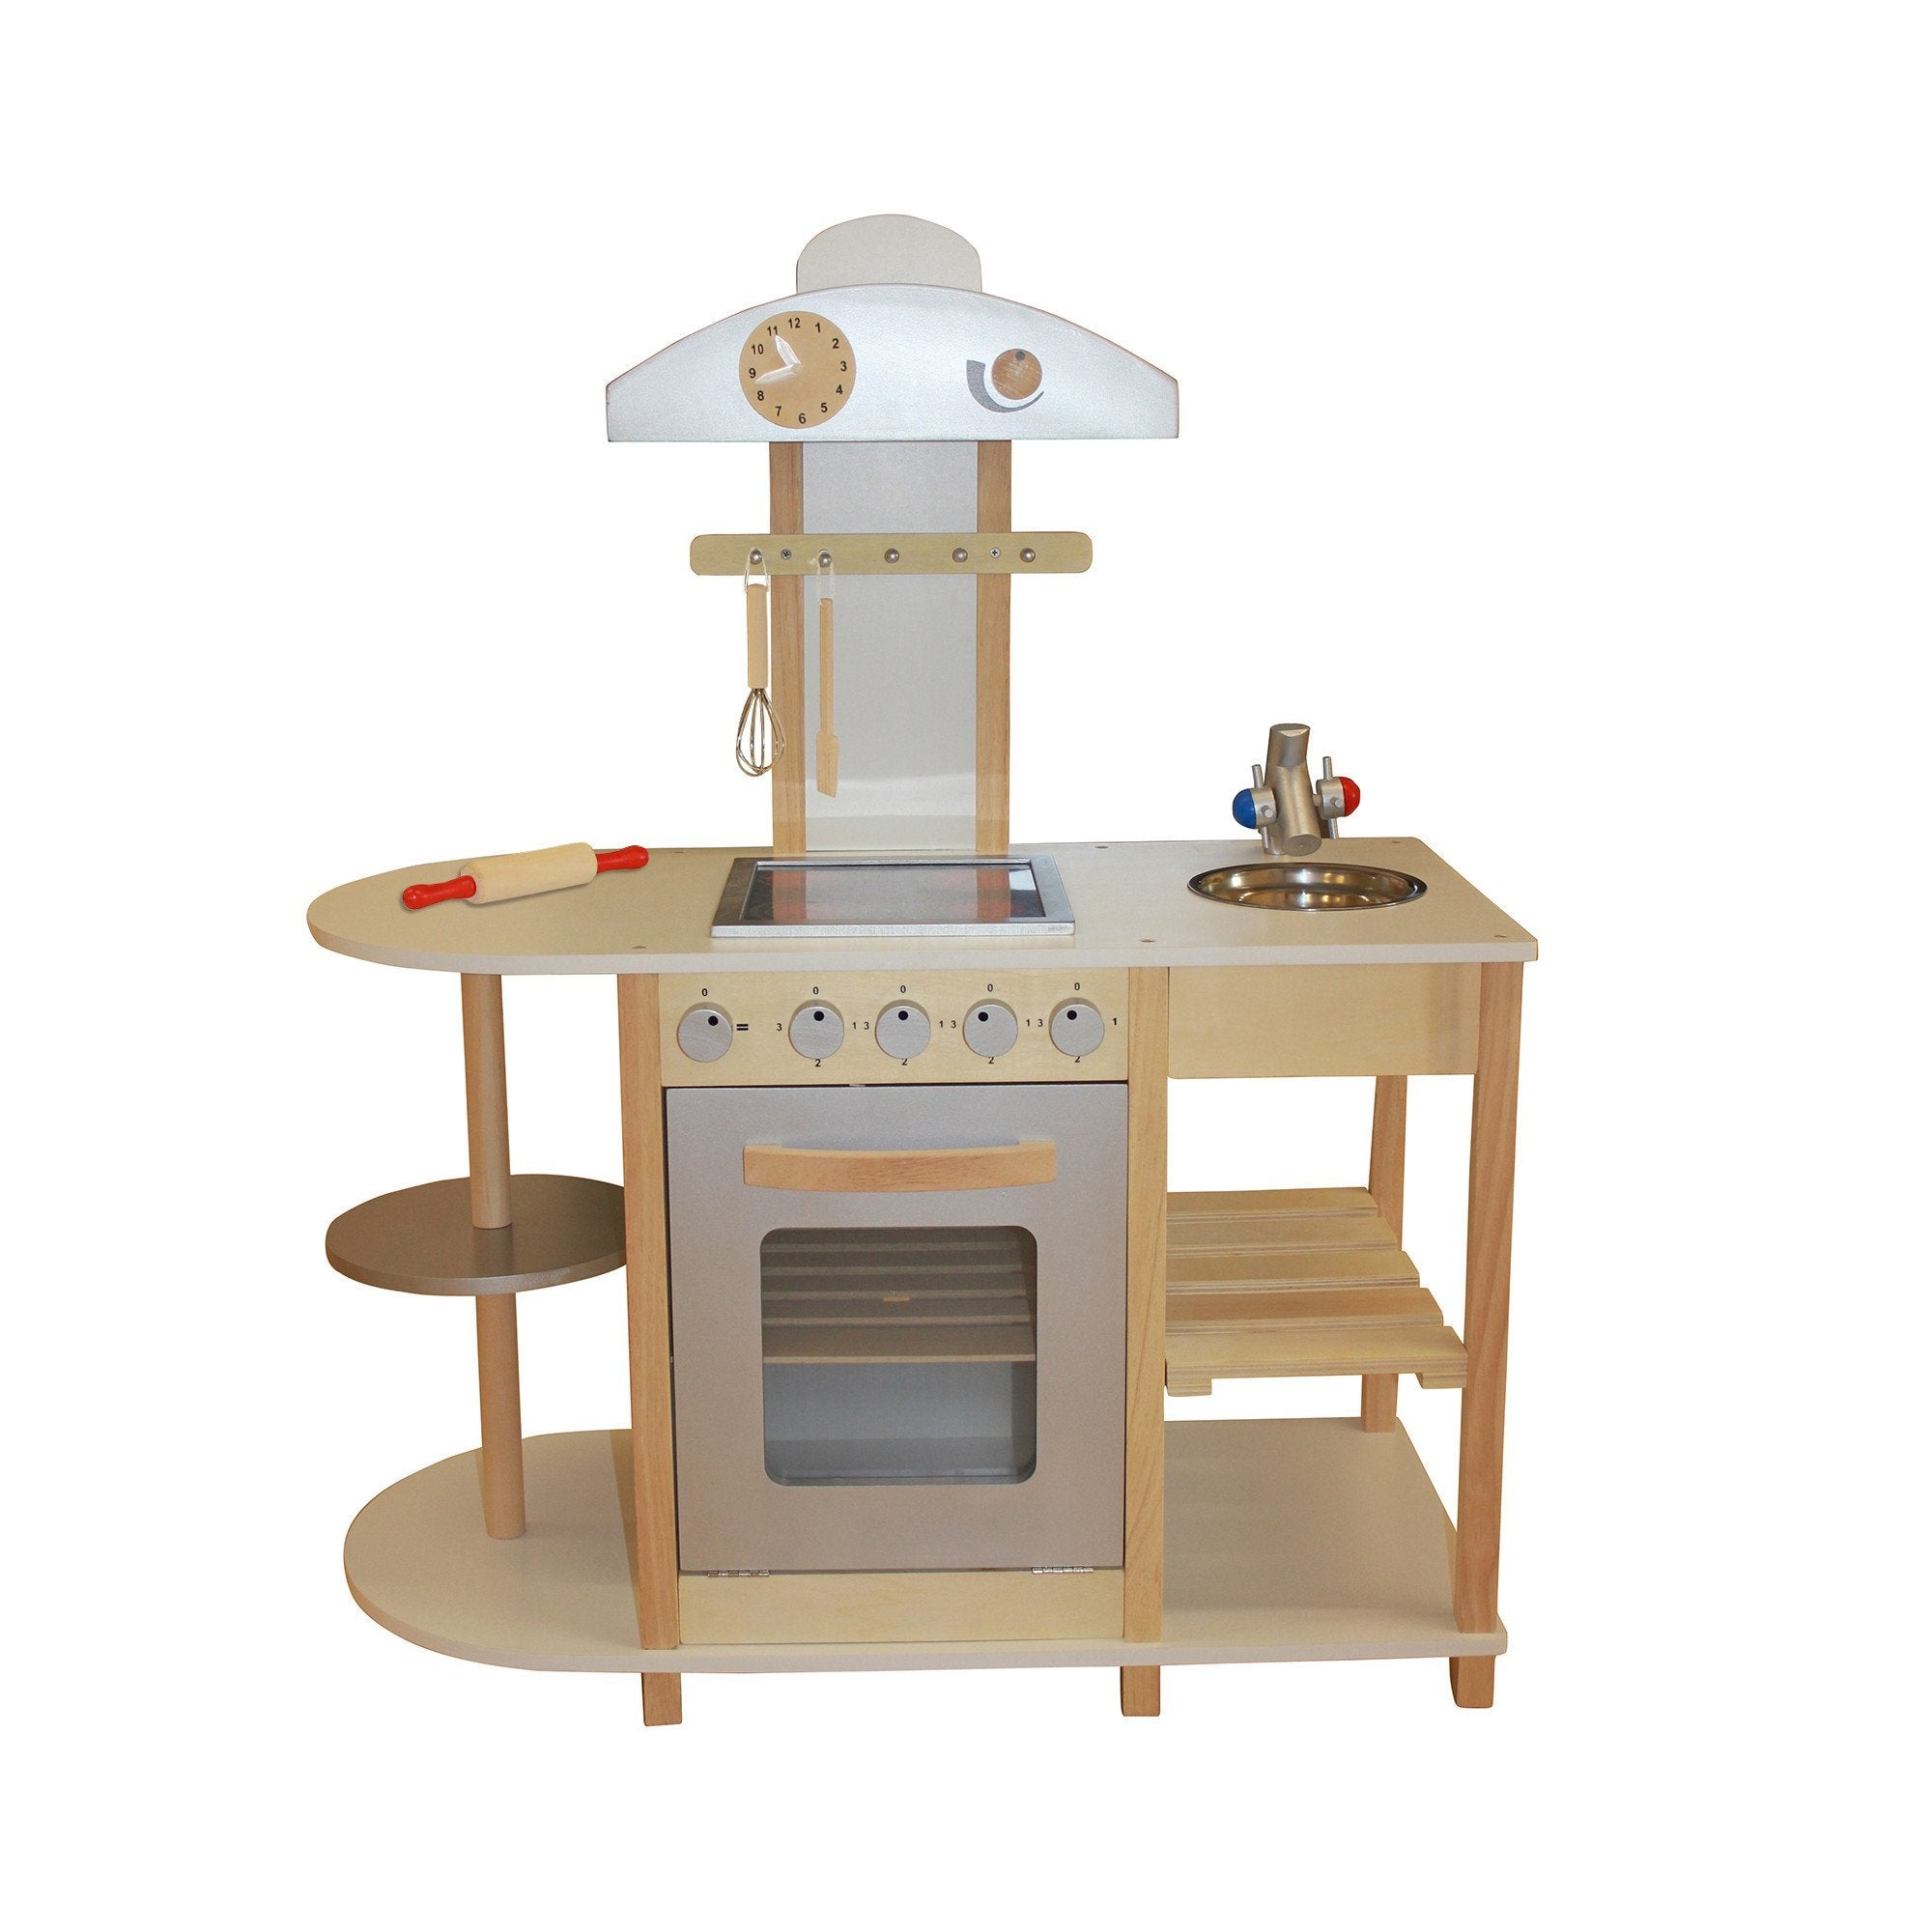 Childrens Wooden Kitchen Furniture Liberty House Toys Breakfast Bar Wooden Toy Kitchen With